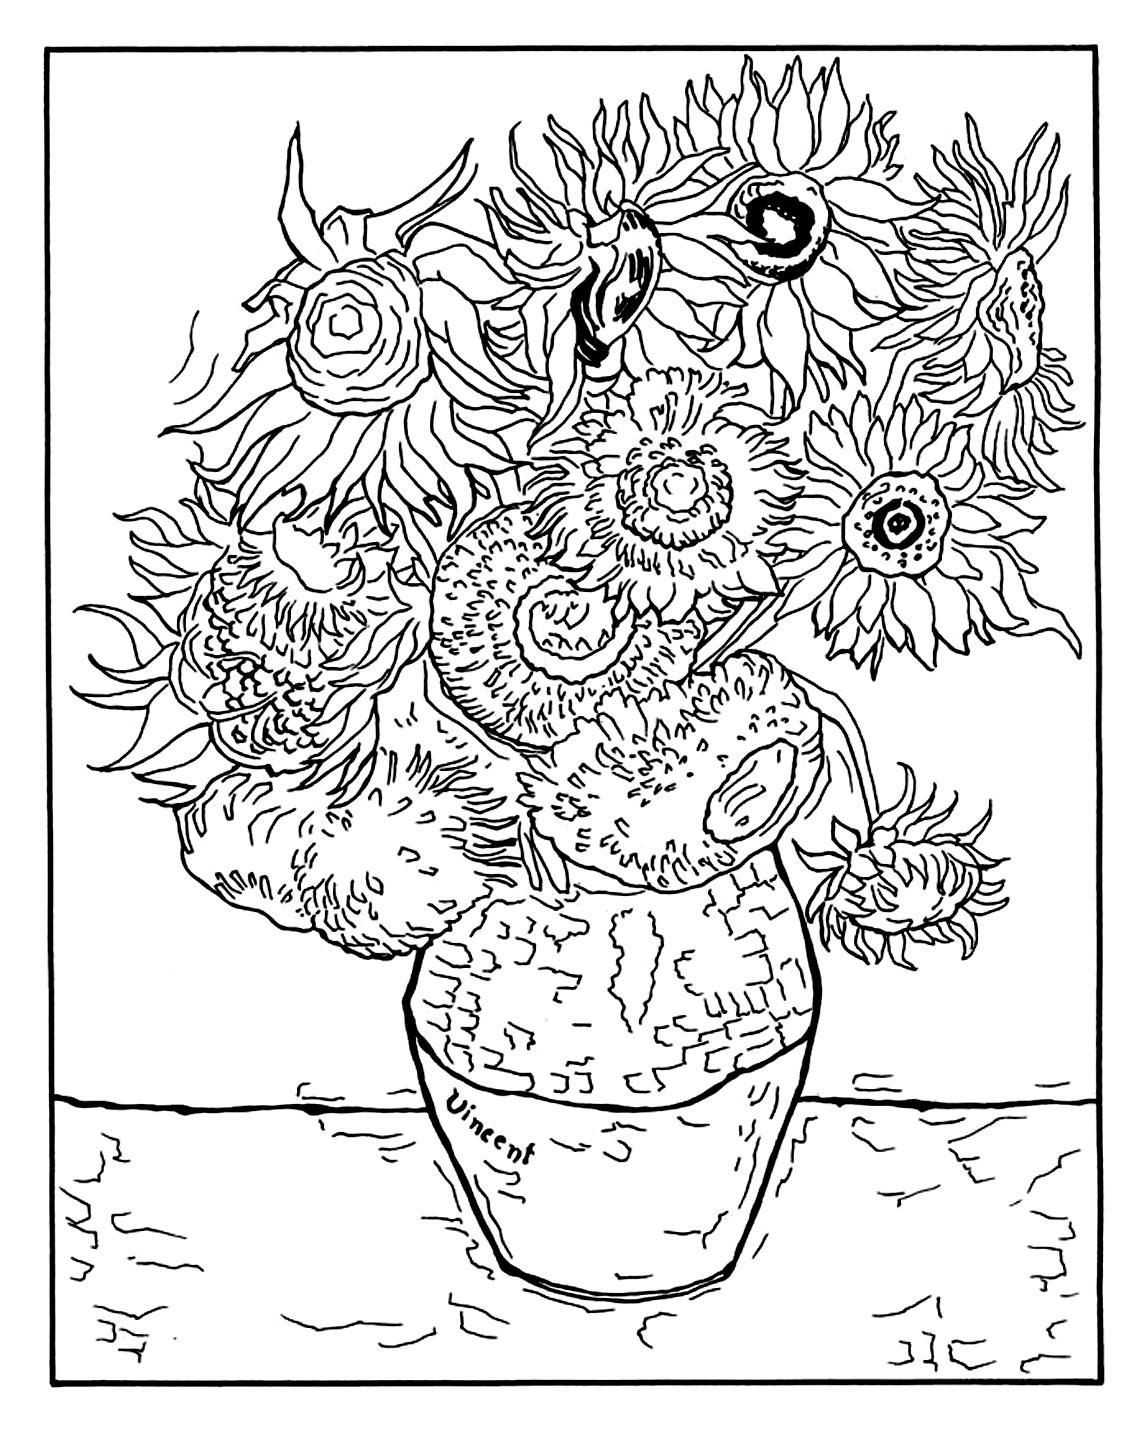 16 Coloring Page Van Gogh In 2020 Van Gogh Coloring Sunflower Coloring Pages Famous Art Coloring